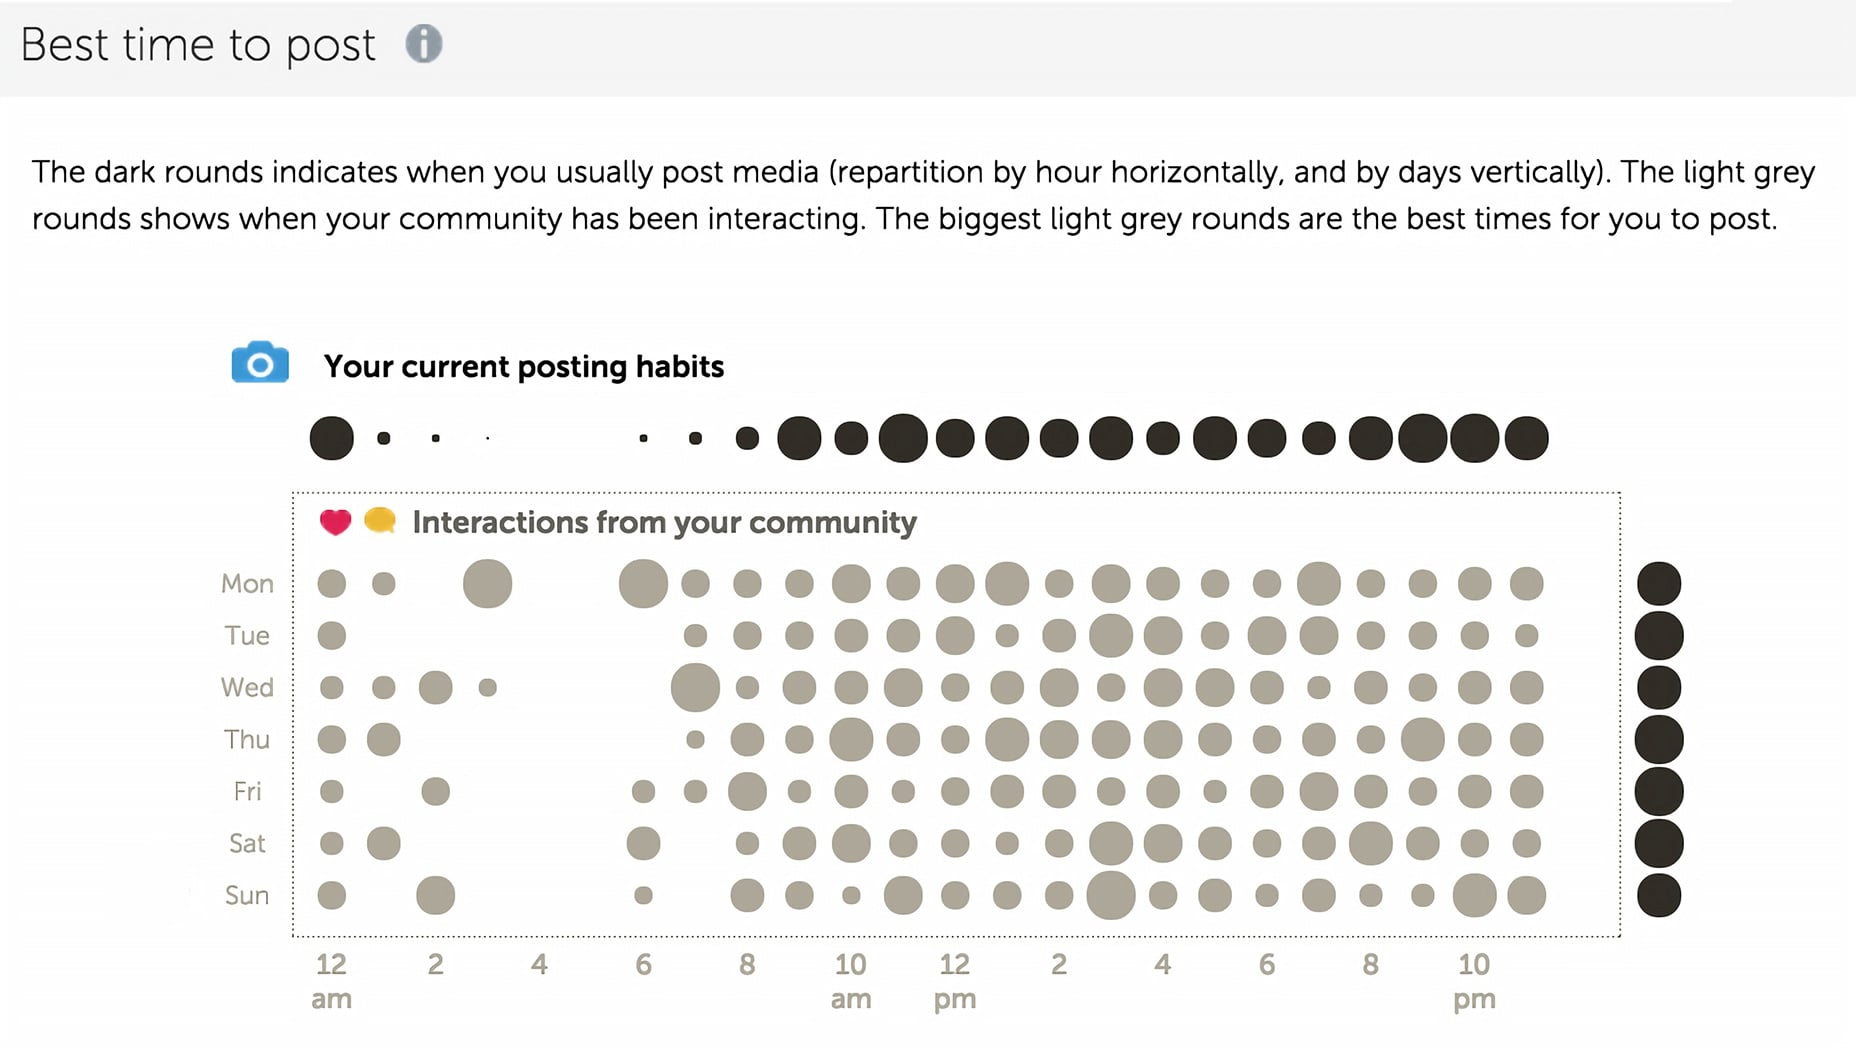 Iconosquare helps you find the best time to post on Instagram